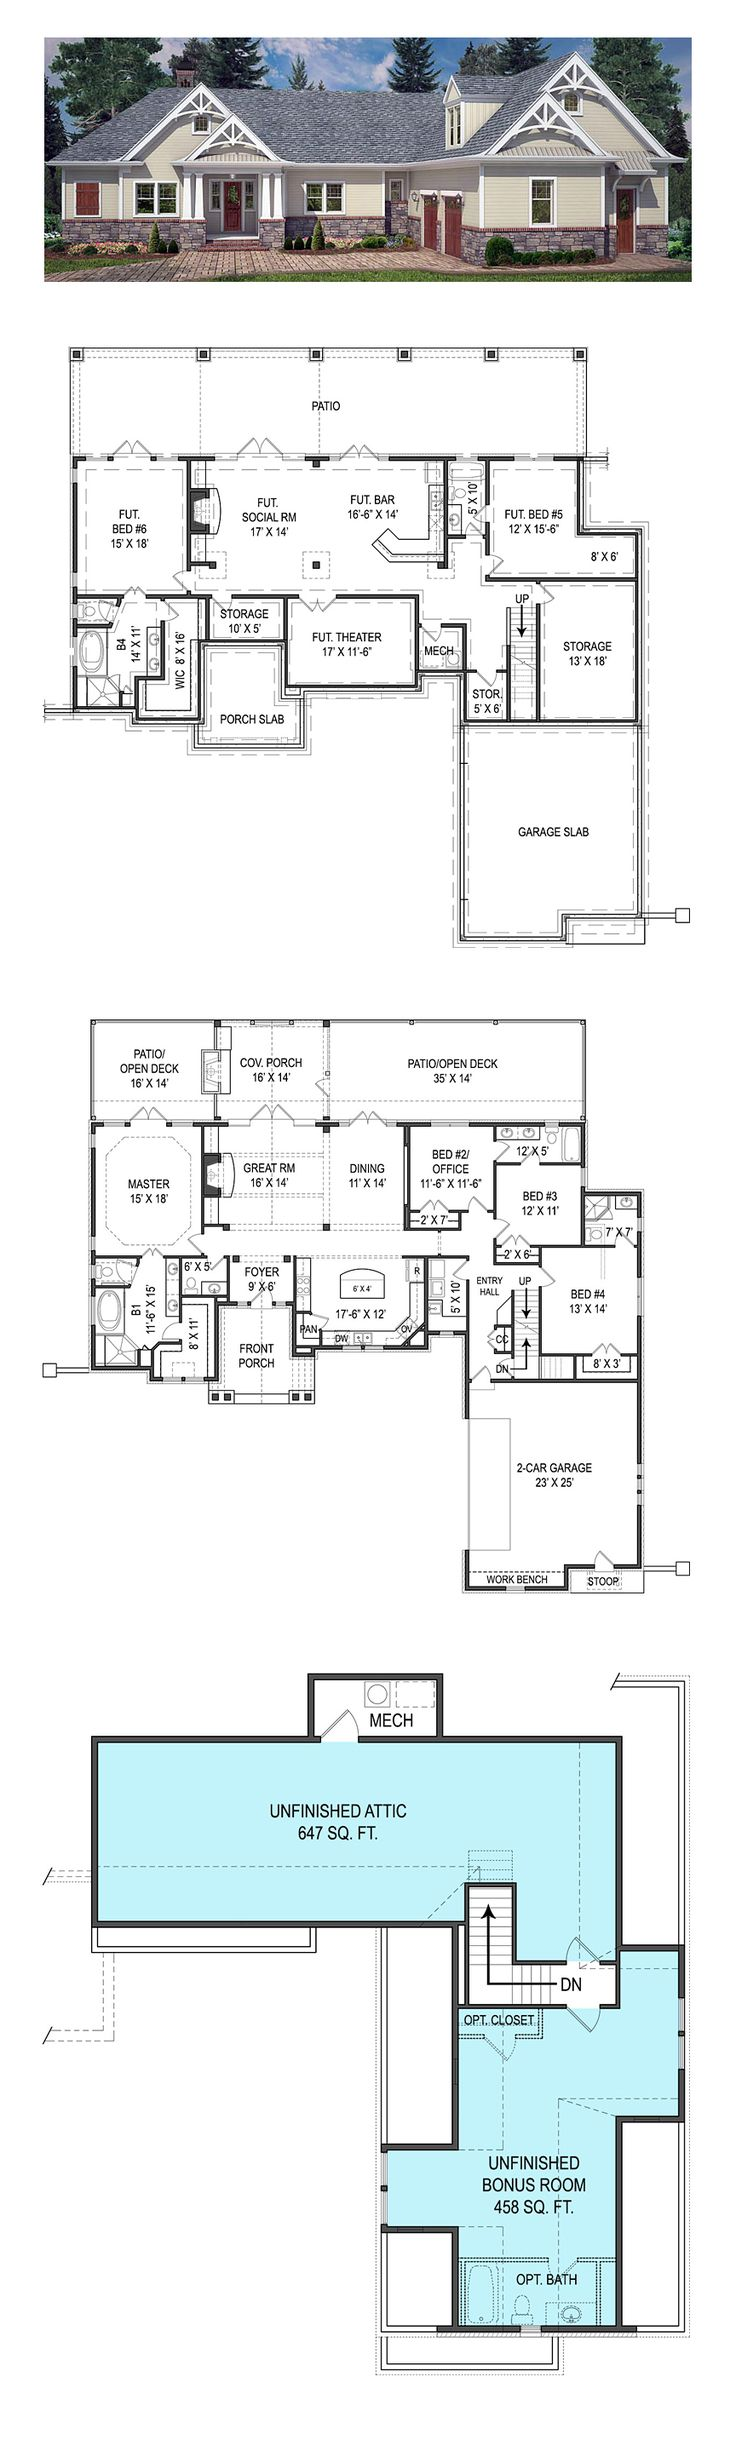 Partial basement house plans home design and style for House plans with basement